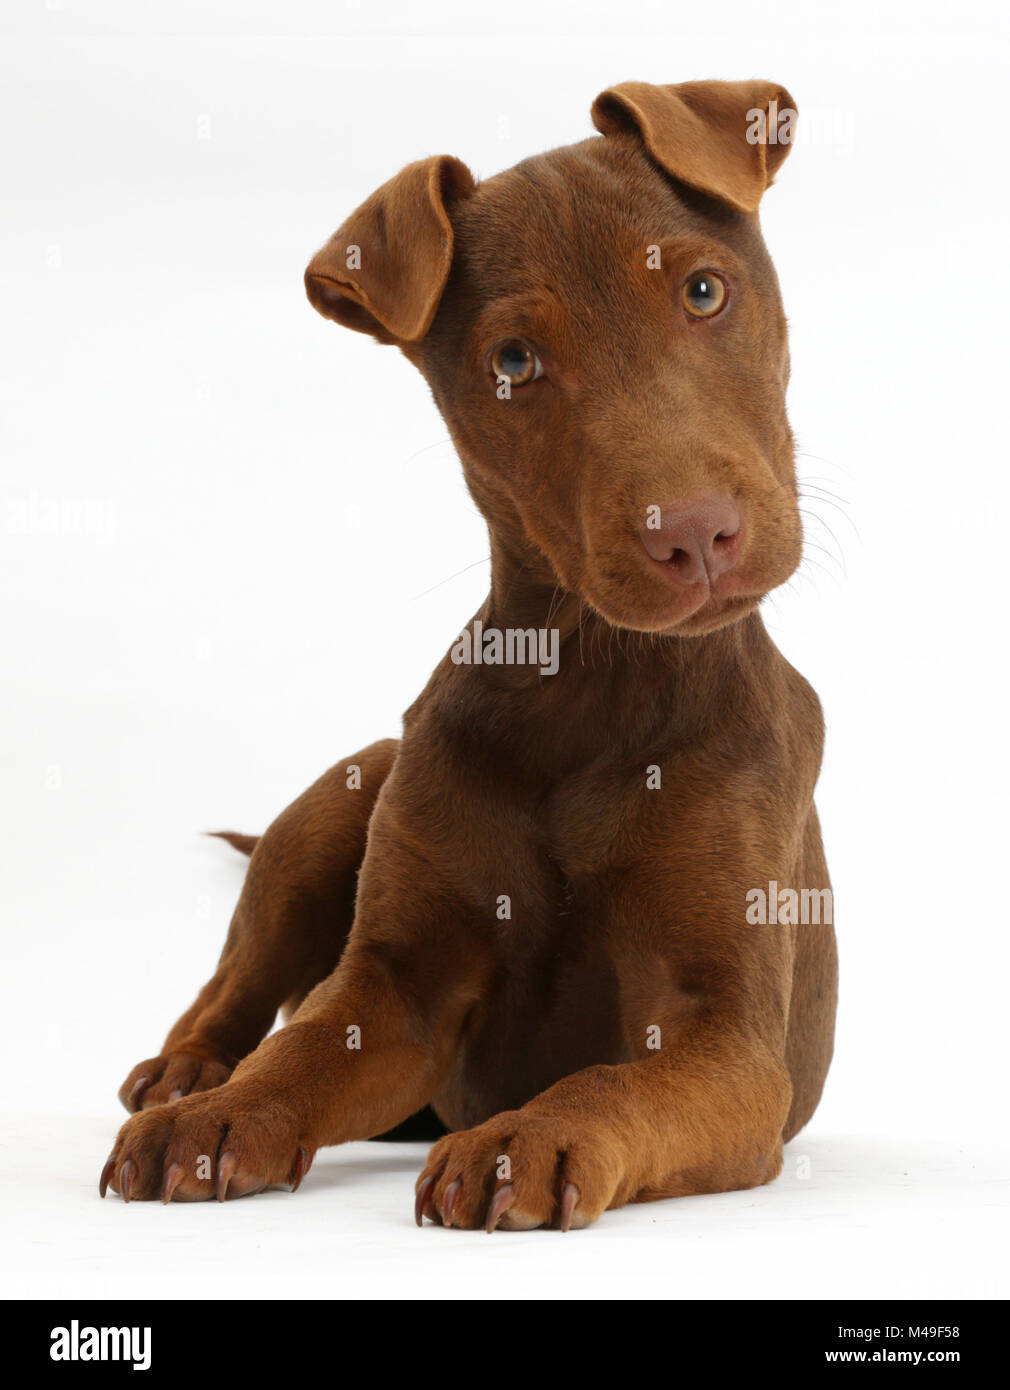 Patterdale terrier dog puppy, Korka, age 4 months. - Stock Image